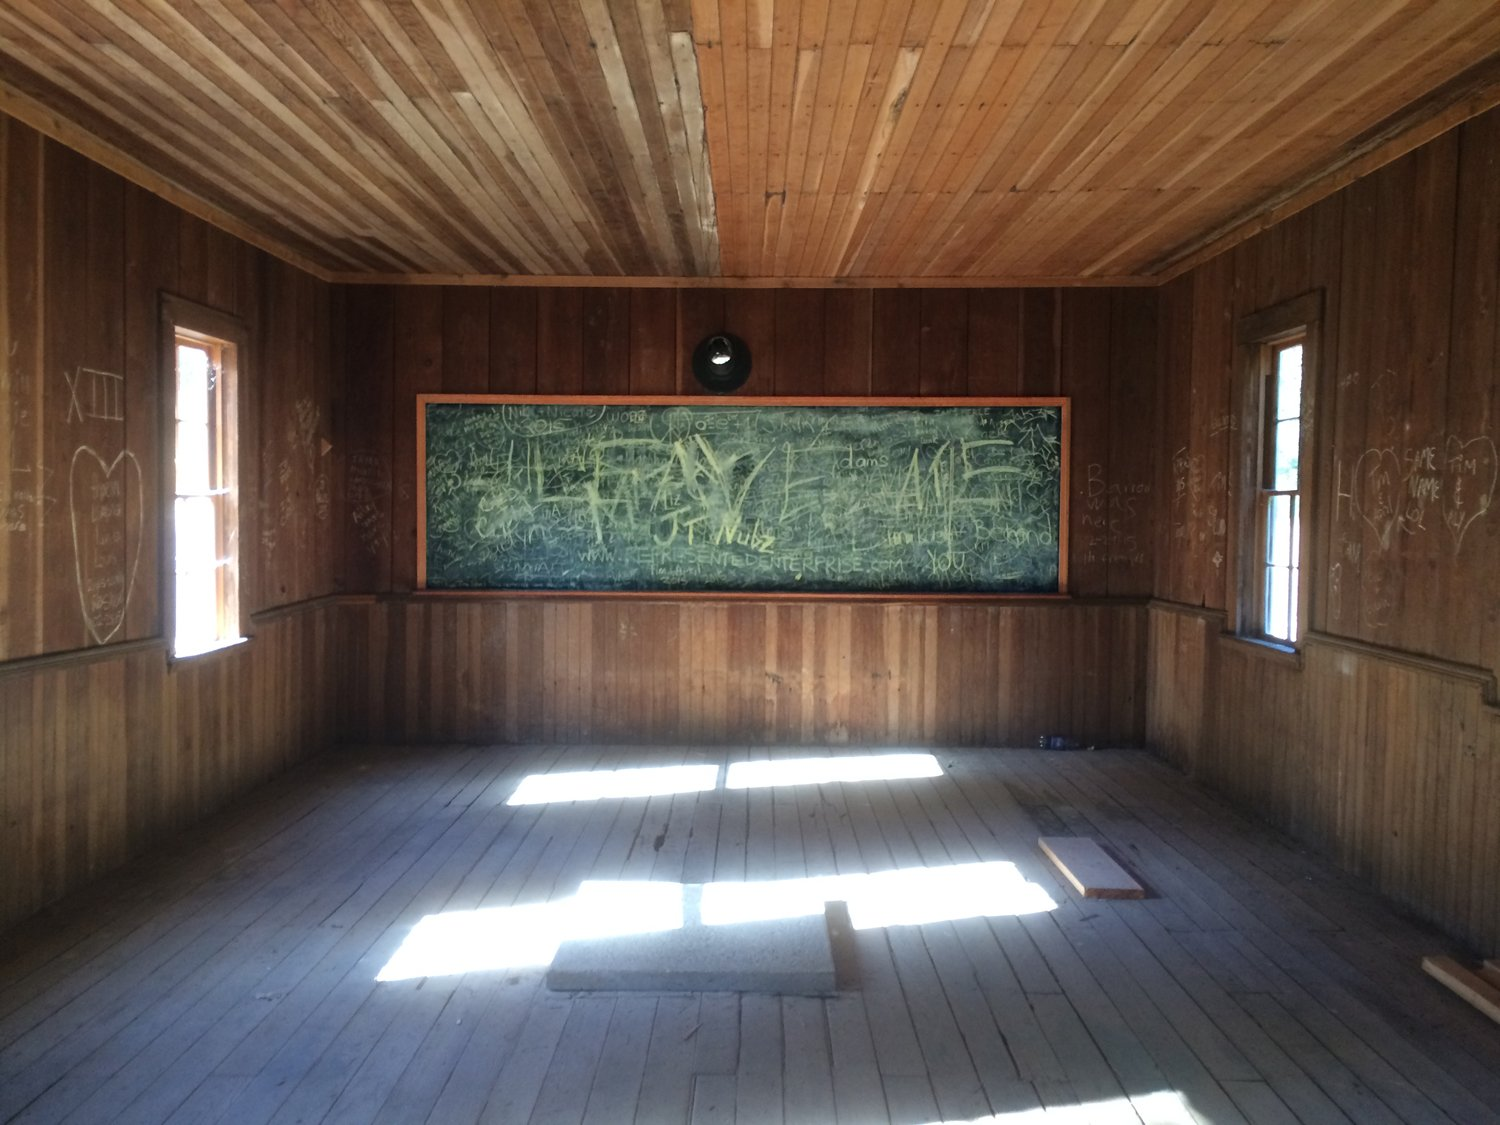 Inside the school house at Golden, Oregon